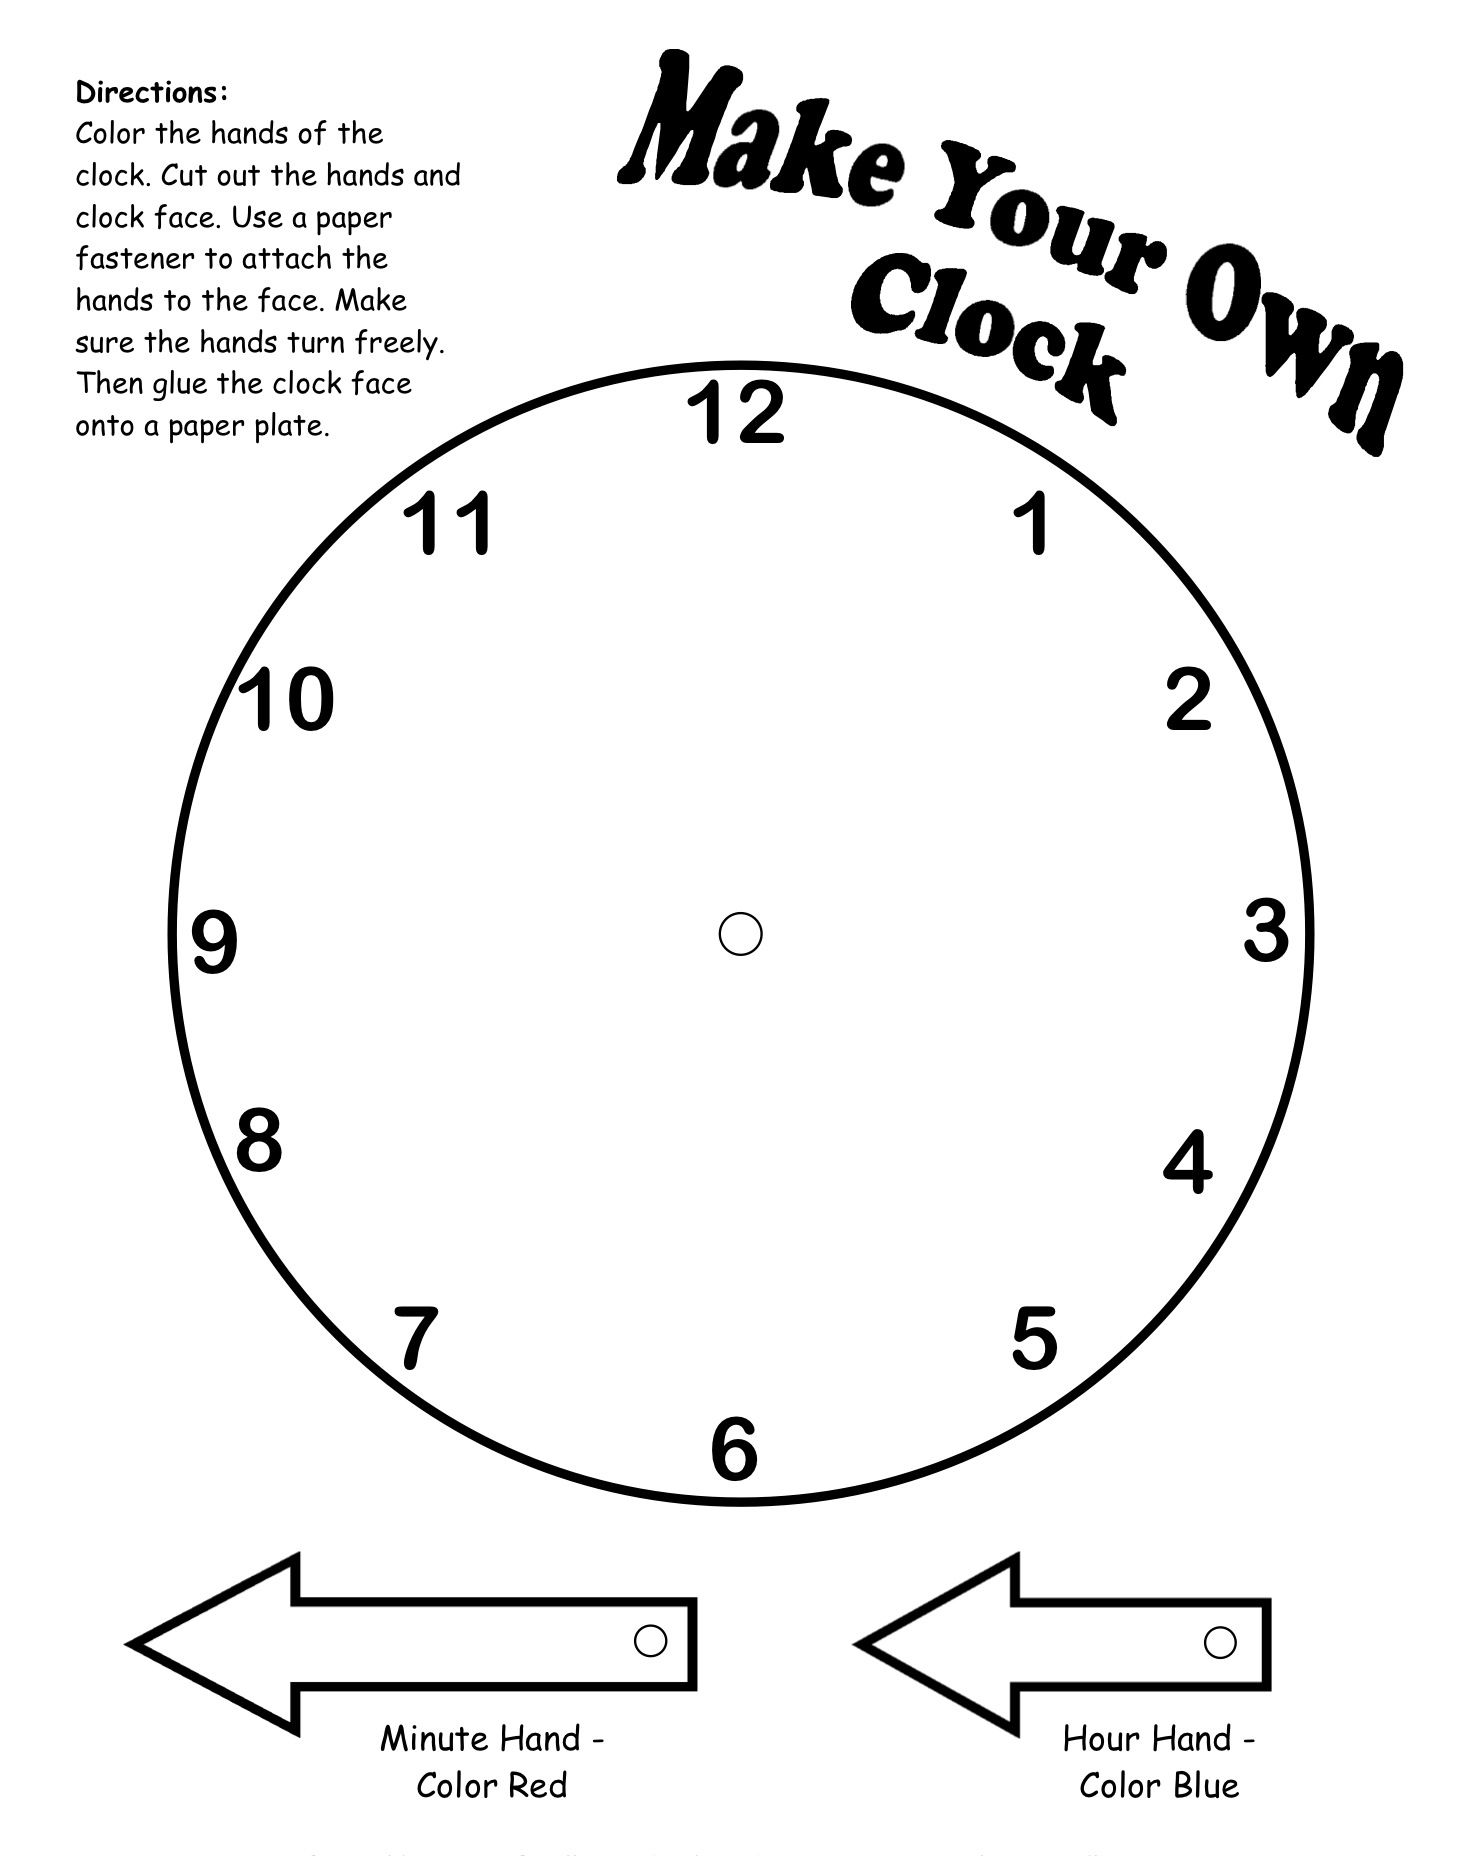 Make Your Own Clock Printable Teaching Math Teaching